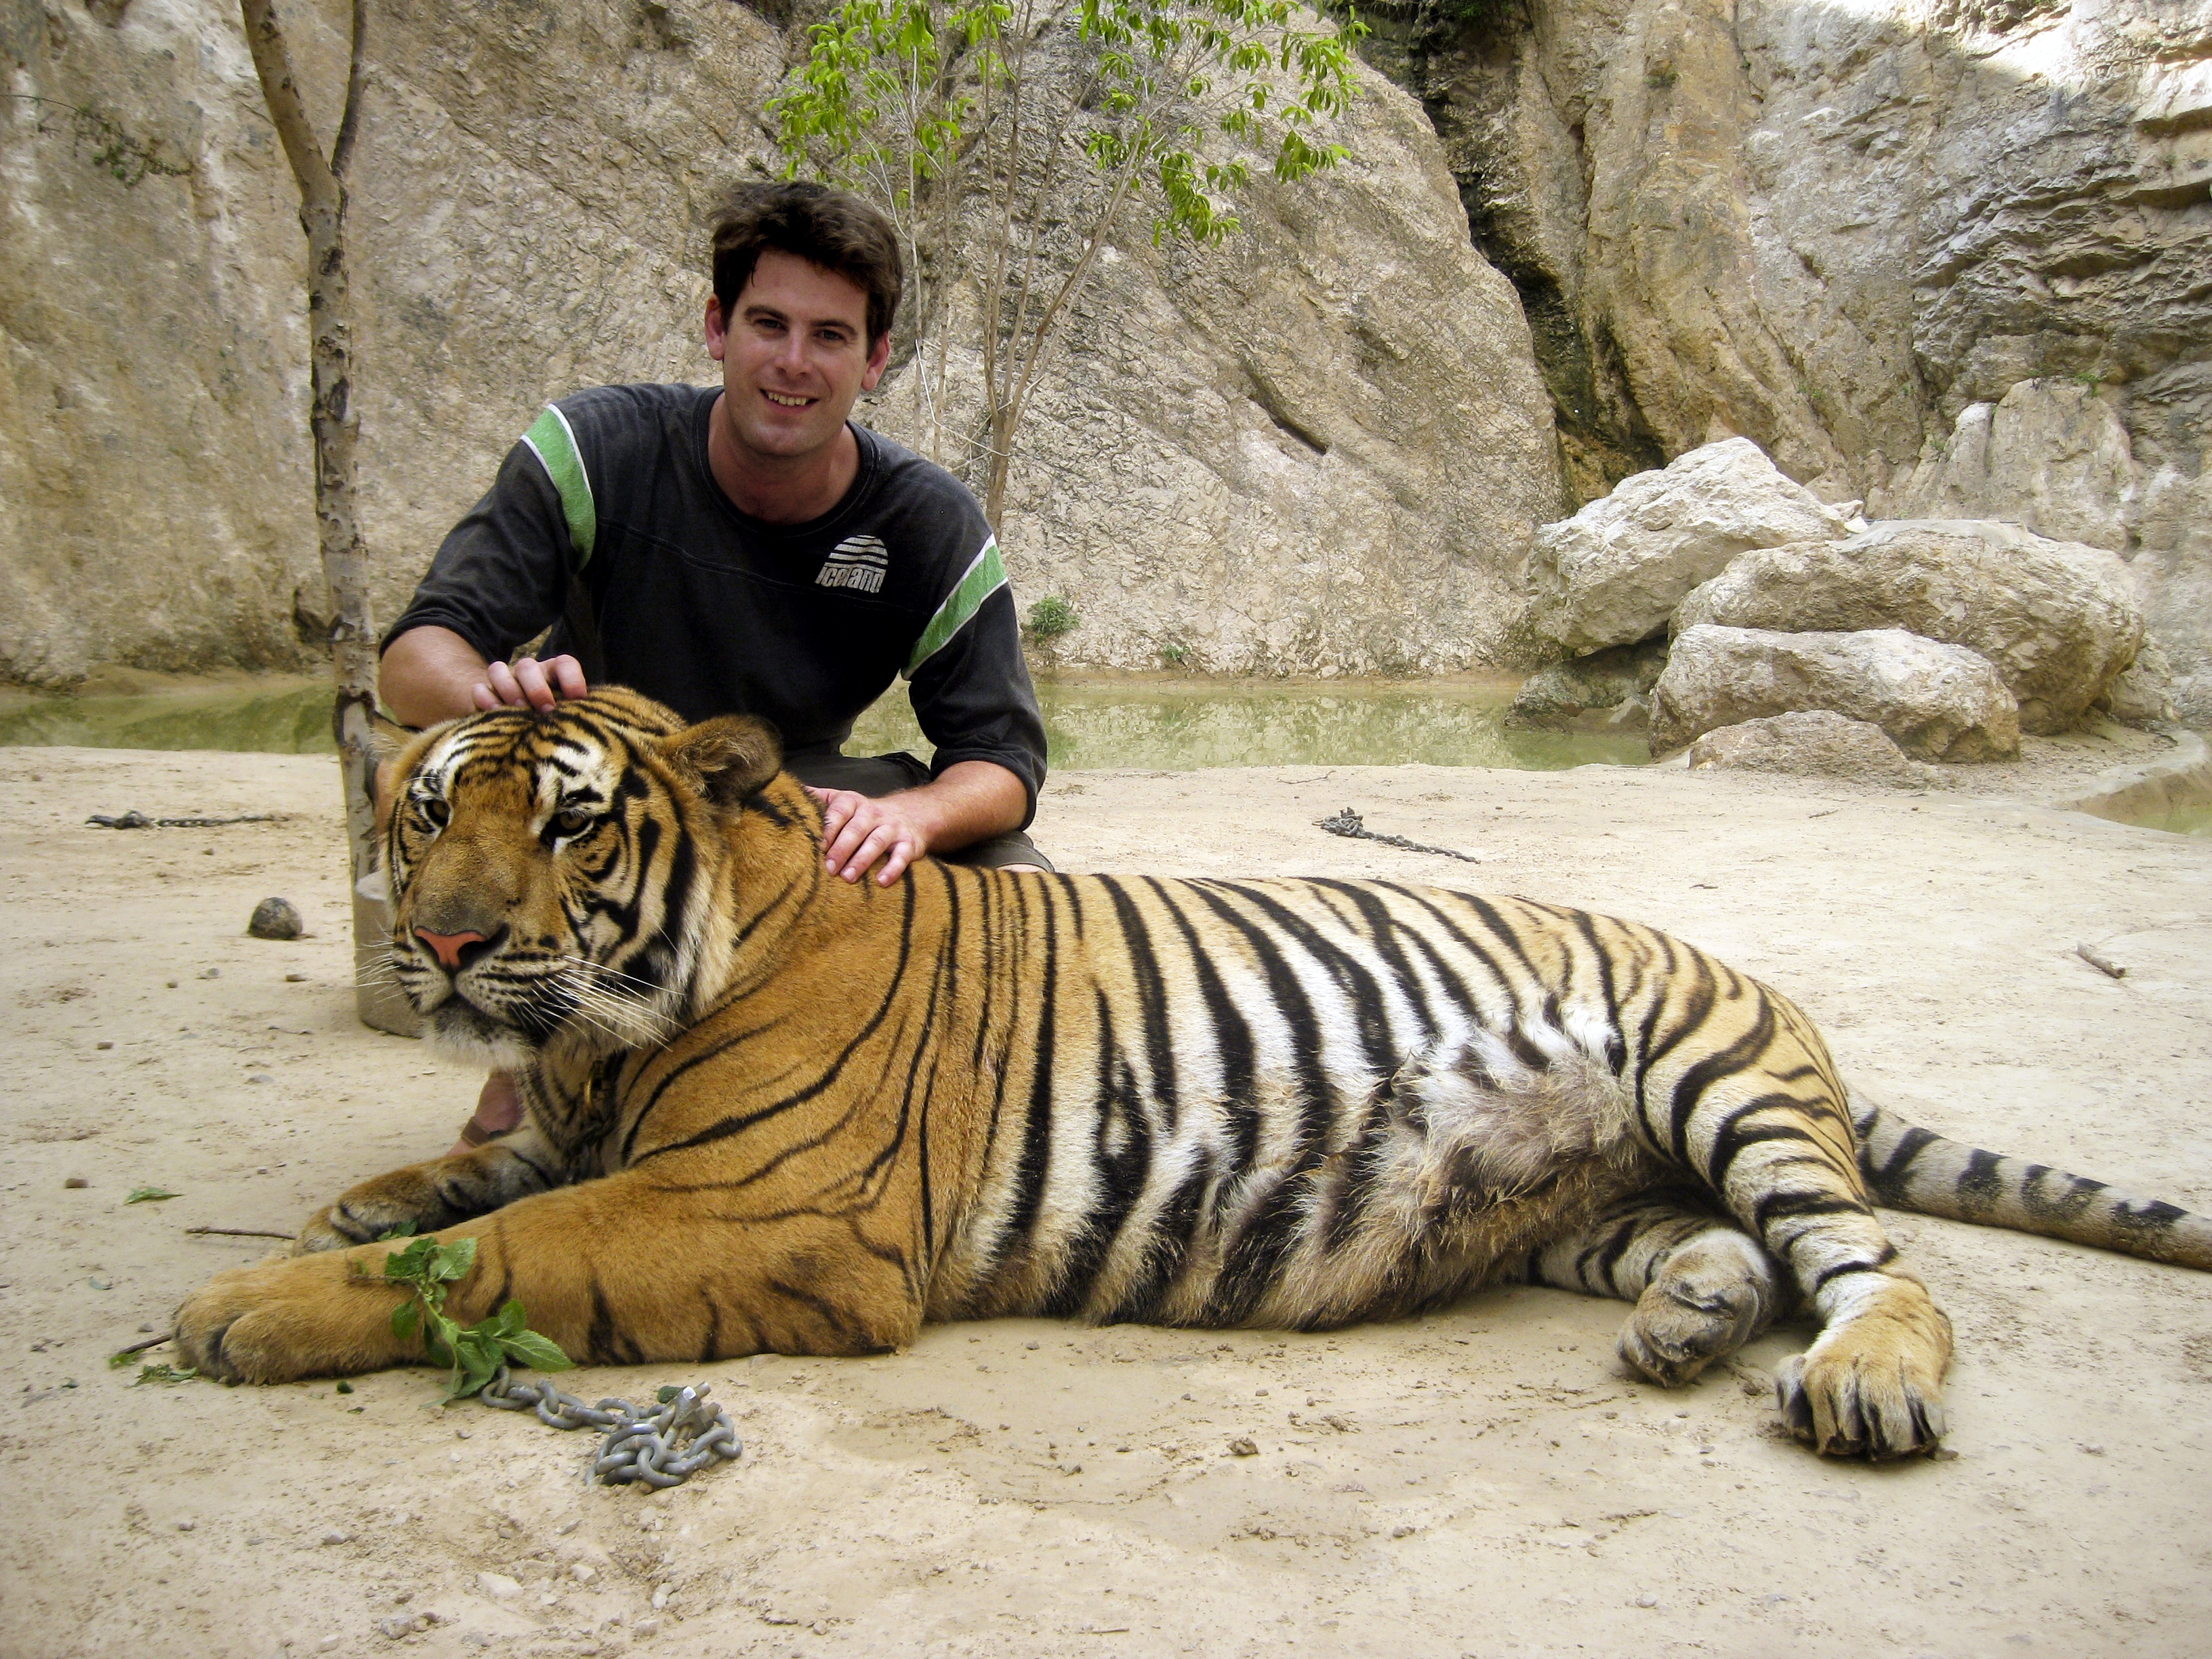 Tiger Selfie - World's Cruelest Tourist Attractions